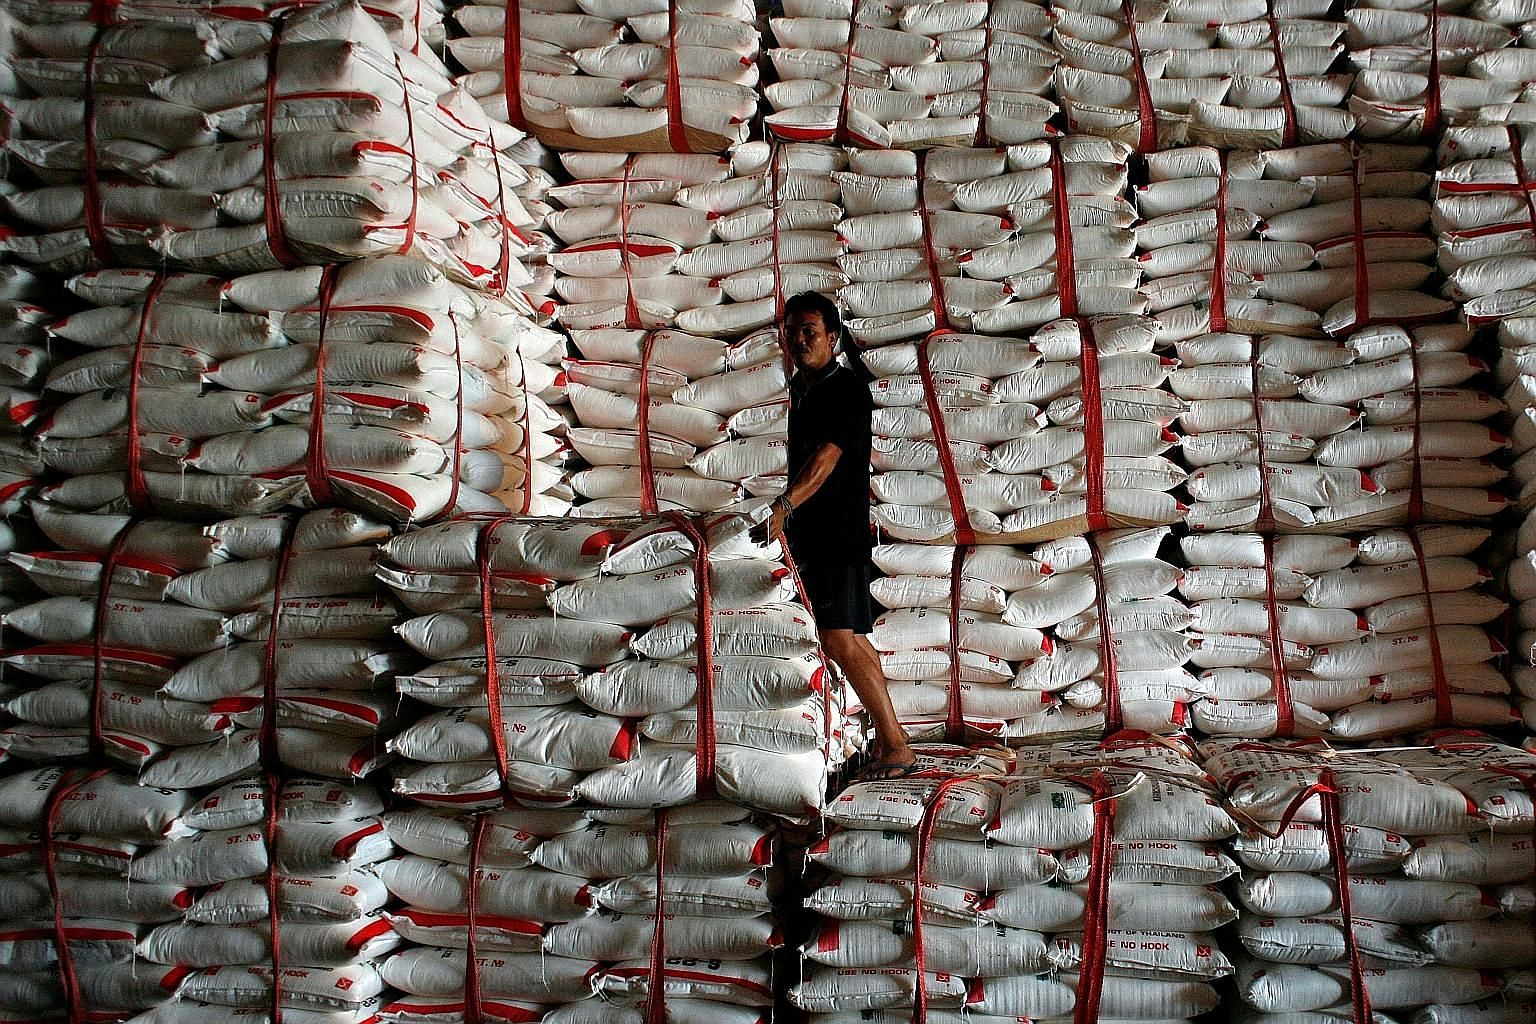 World stockpiles of sugar are set to swell to the highest ever this season and stay near the record next year, according to the US Department of Agriculture.